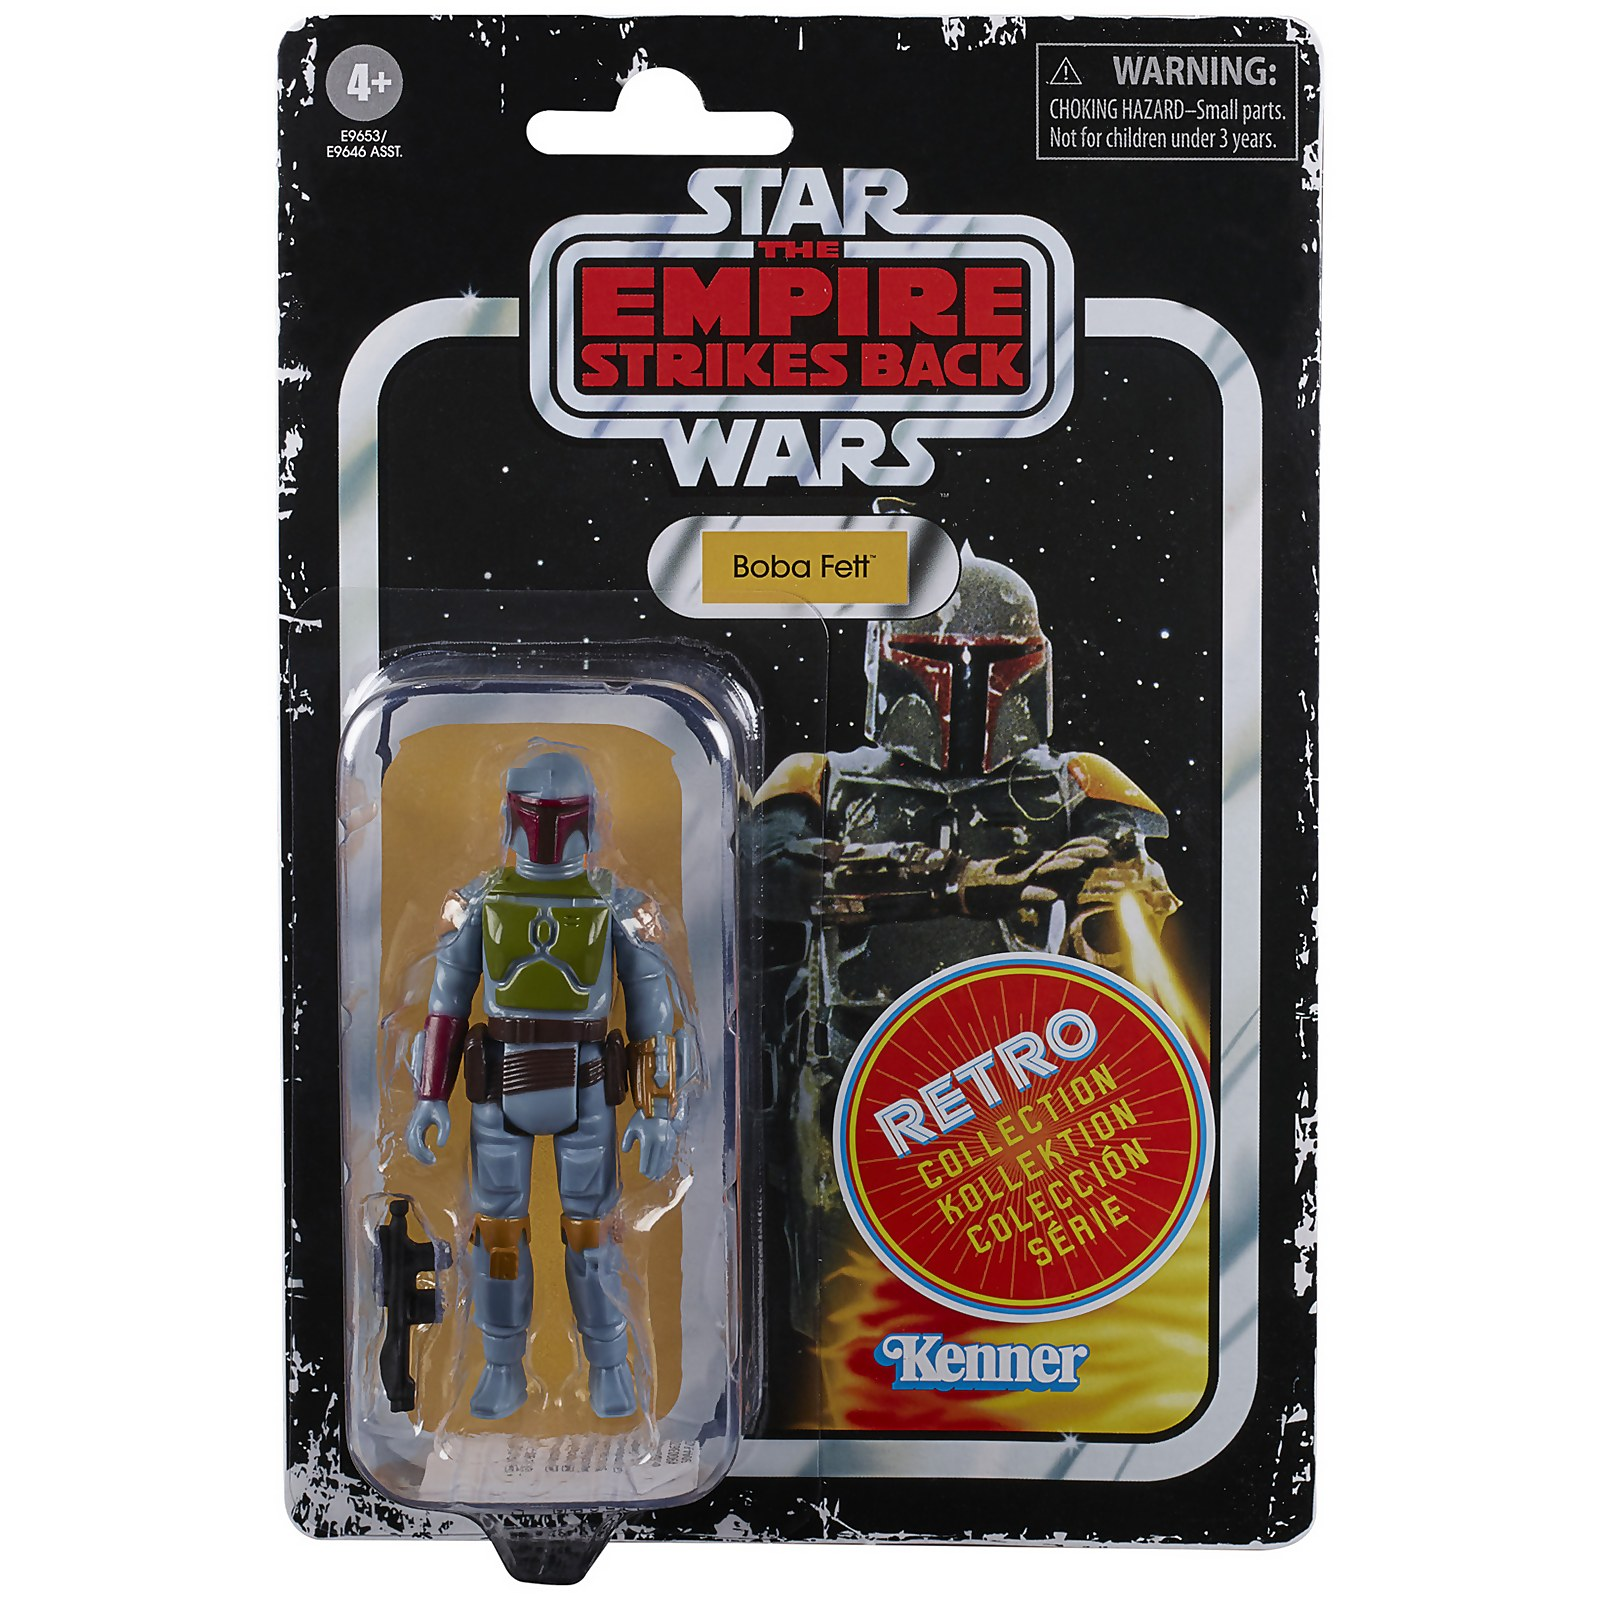 Image of Hasbro Star Wars Retro Collection Boba Fett Toy Action Figure